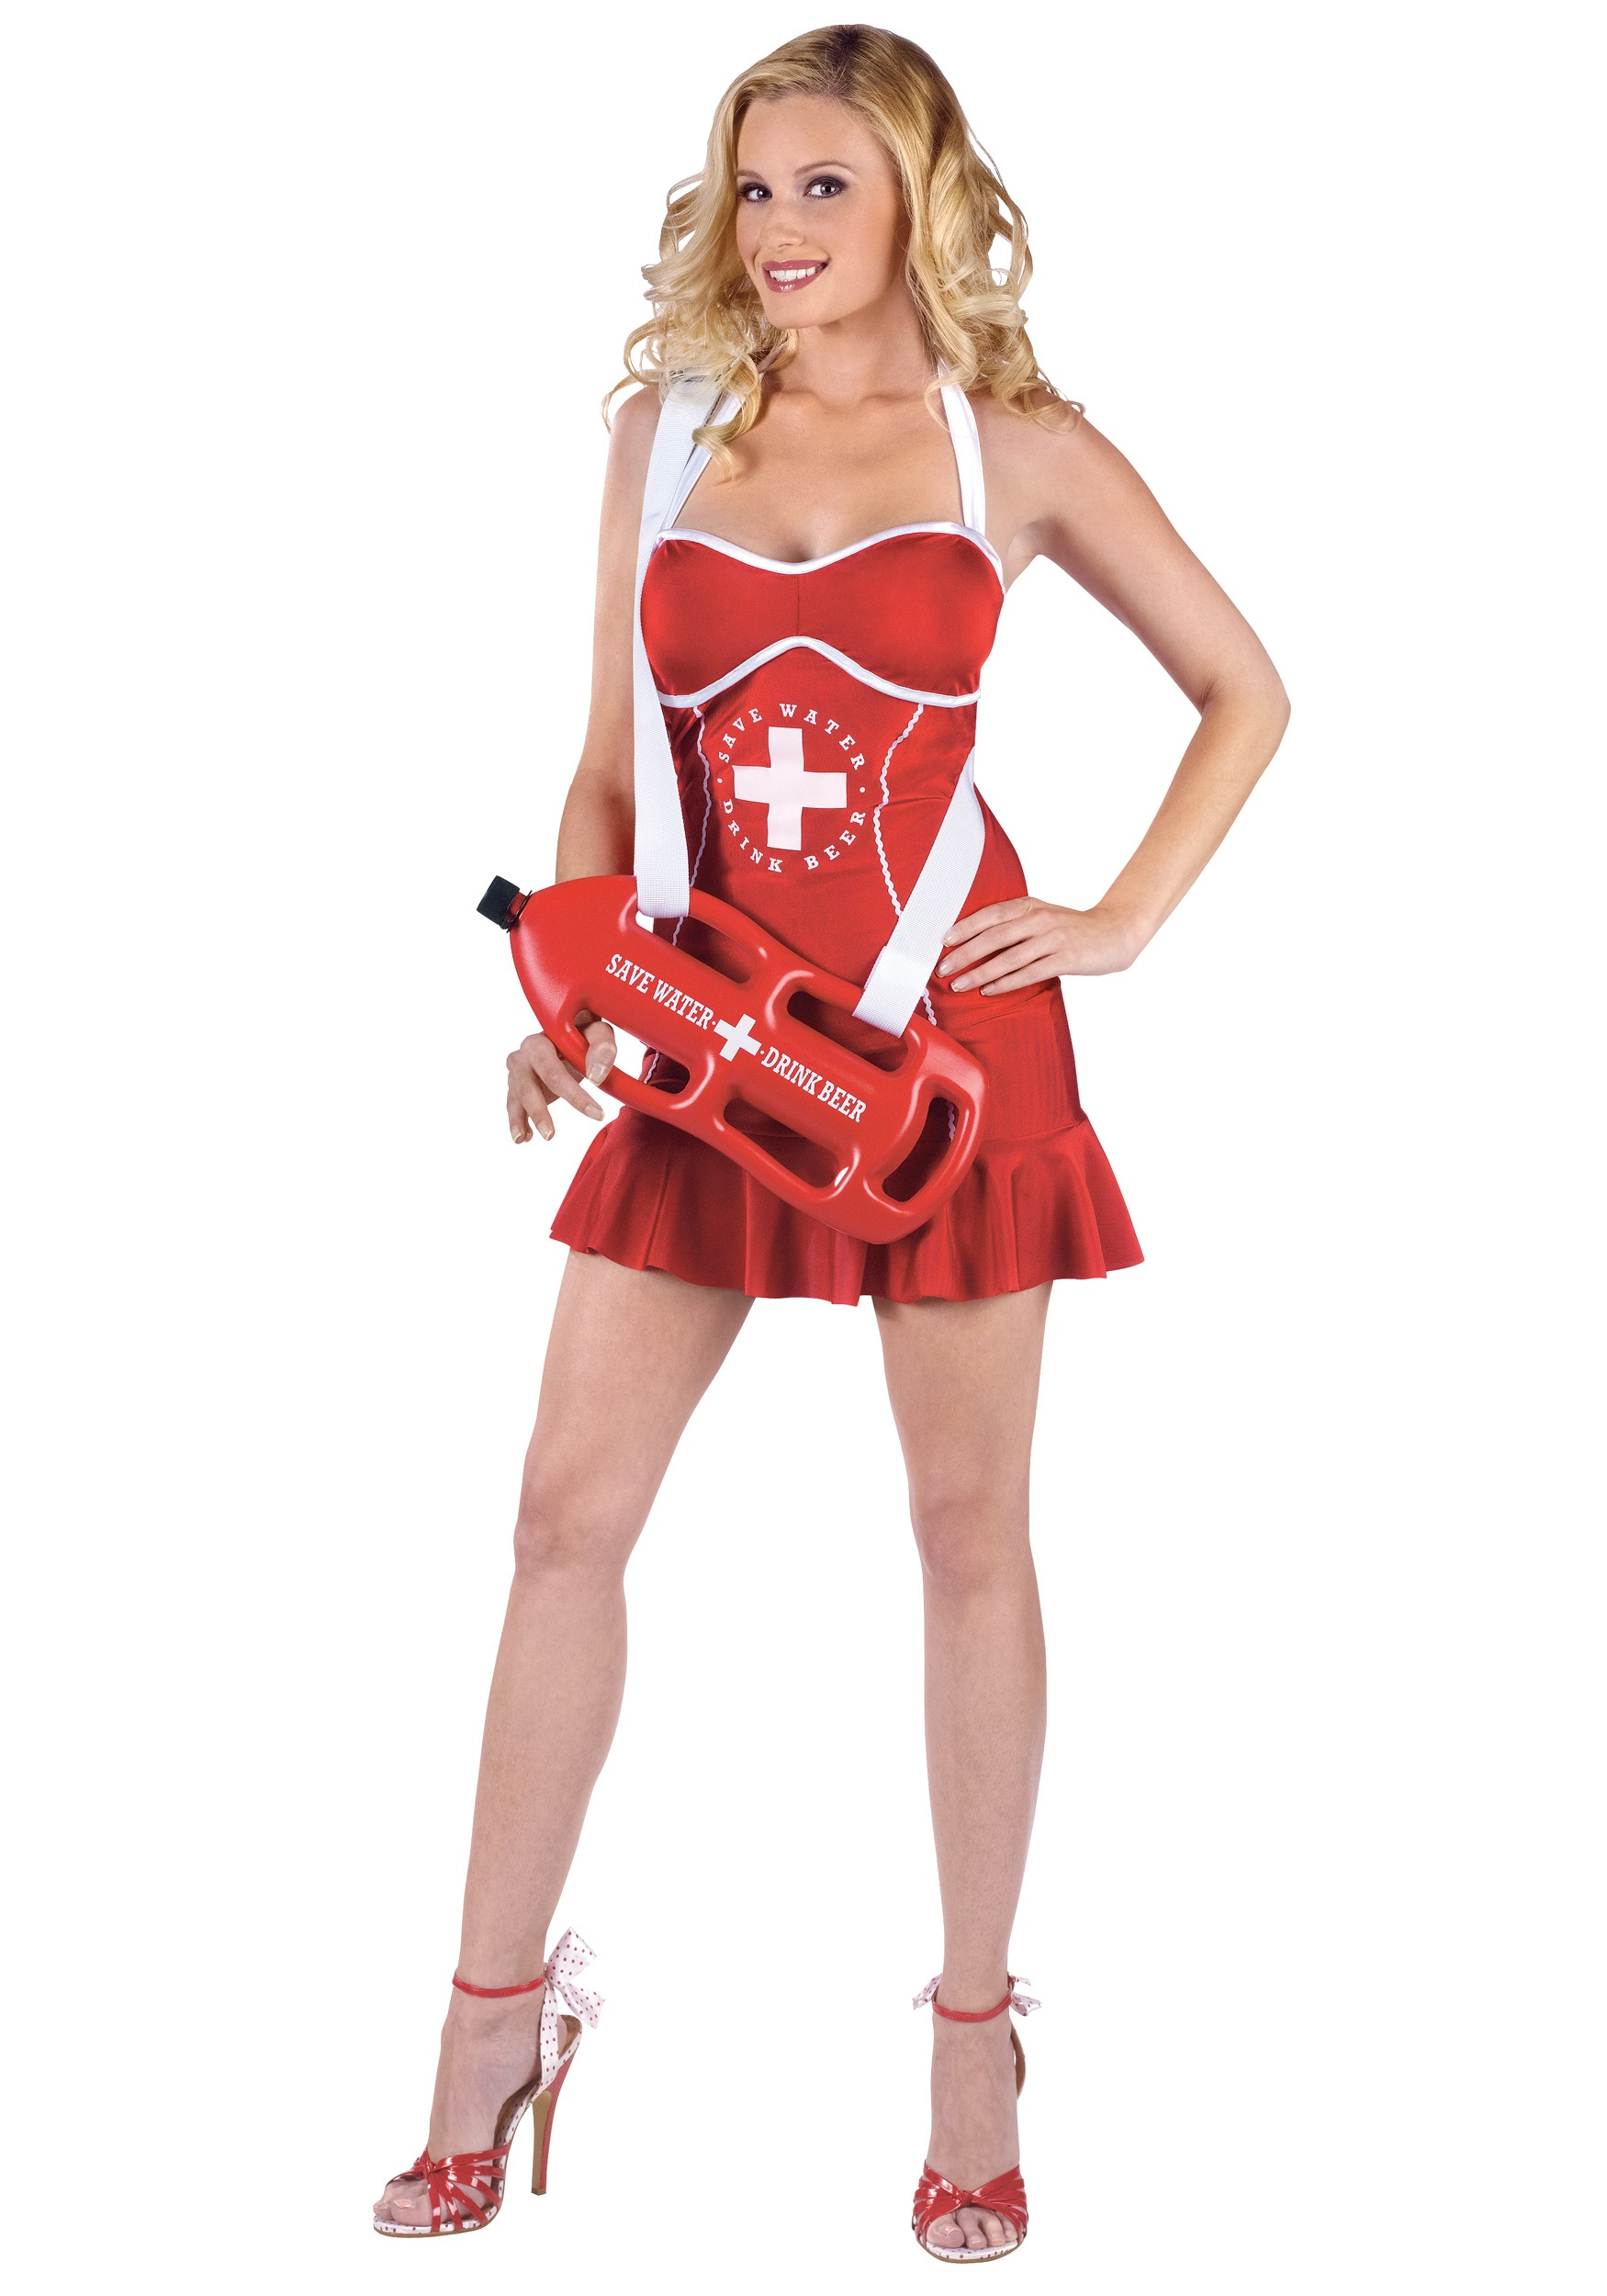 Off Duty Lifeguard Costume  sc 1 st  Halloween Costumes & Off Duty Lifeguard Costume - Halloween Costumes